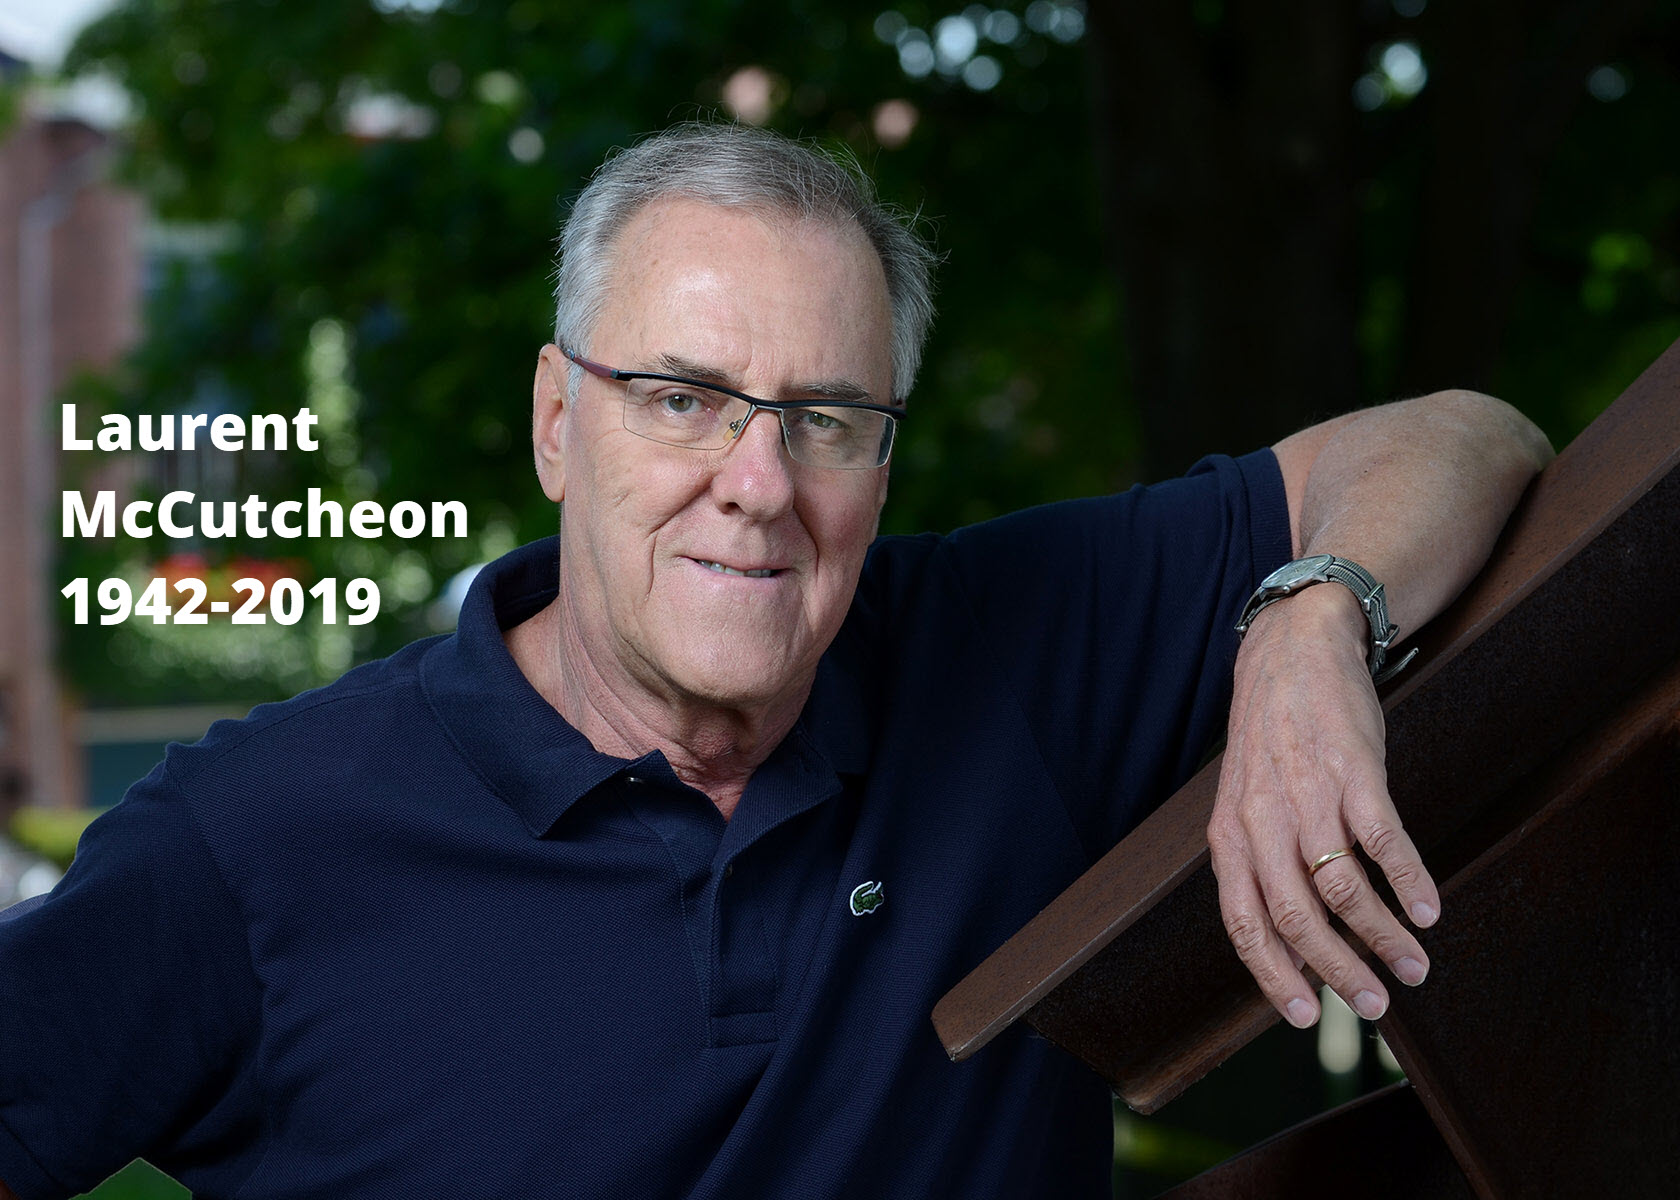 Laurent McCutcheon | 1942-2019